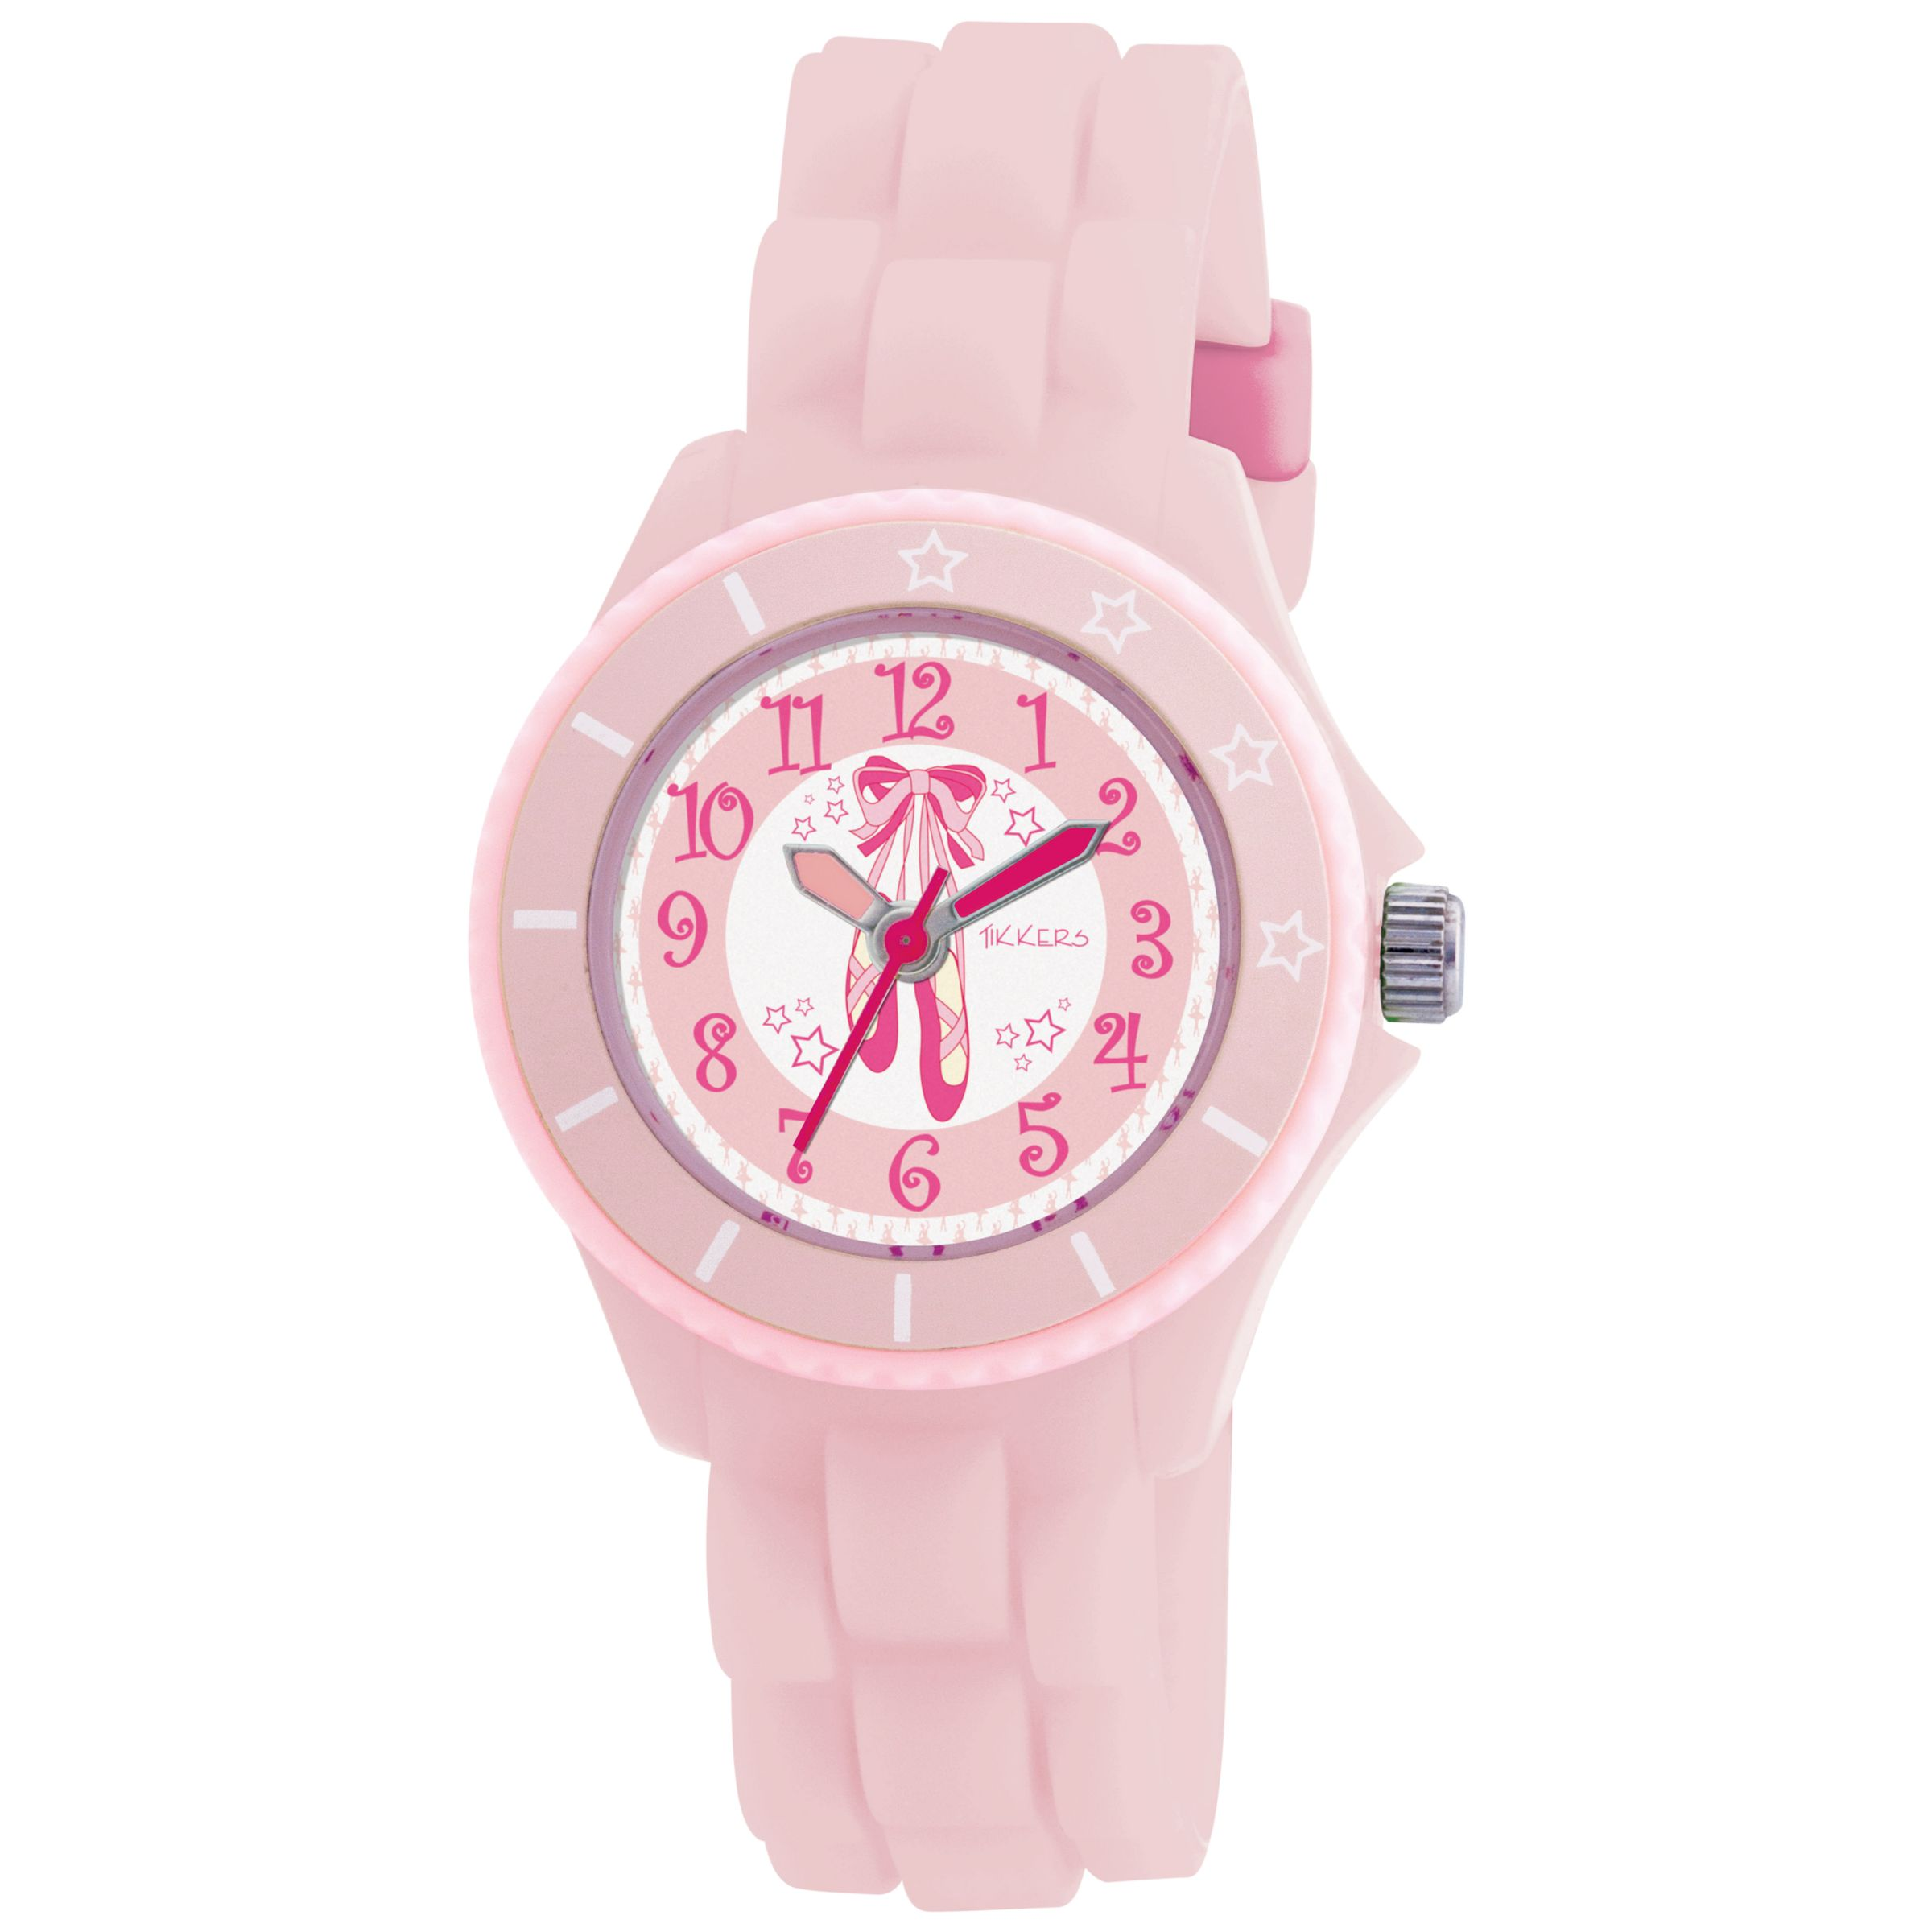 Tikkers TK0019 Kids Ballet Rubber Strap Watch, Pink